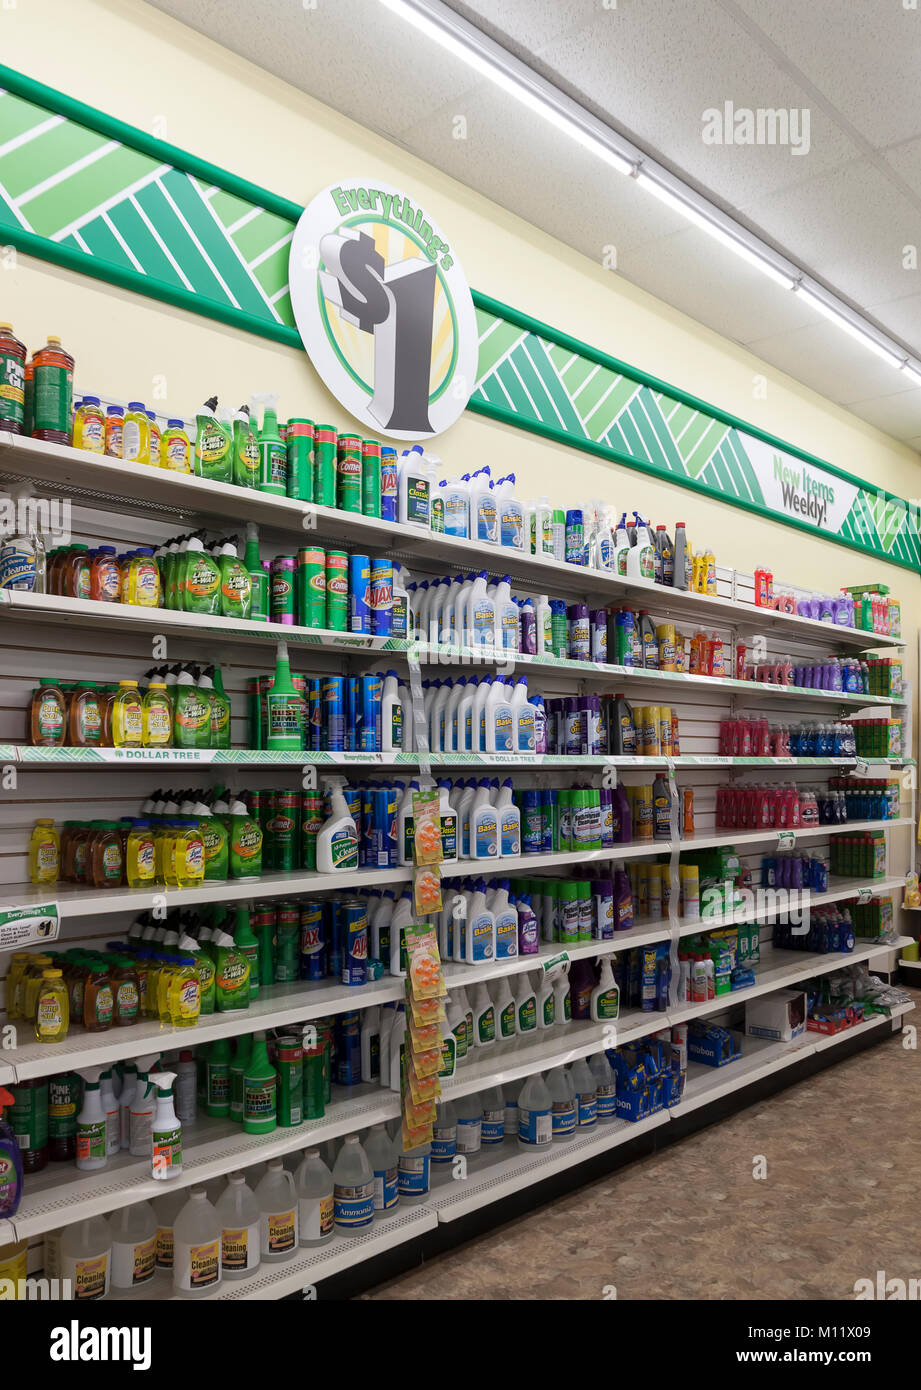 Cleaning products for sale on shelves in a Dollar Tree store